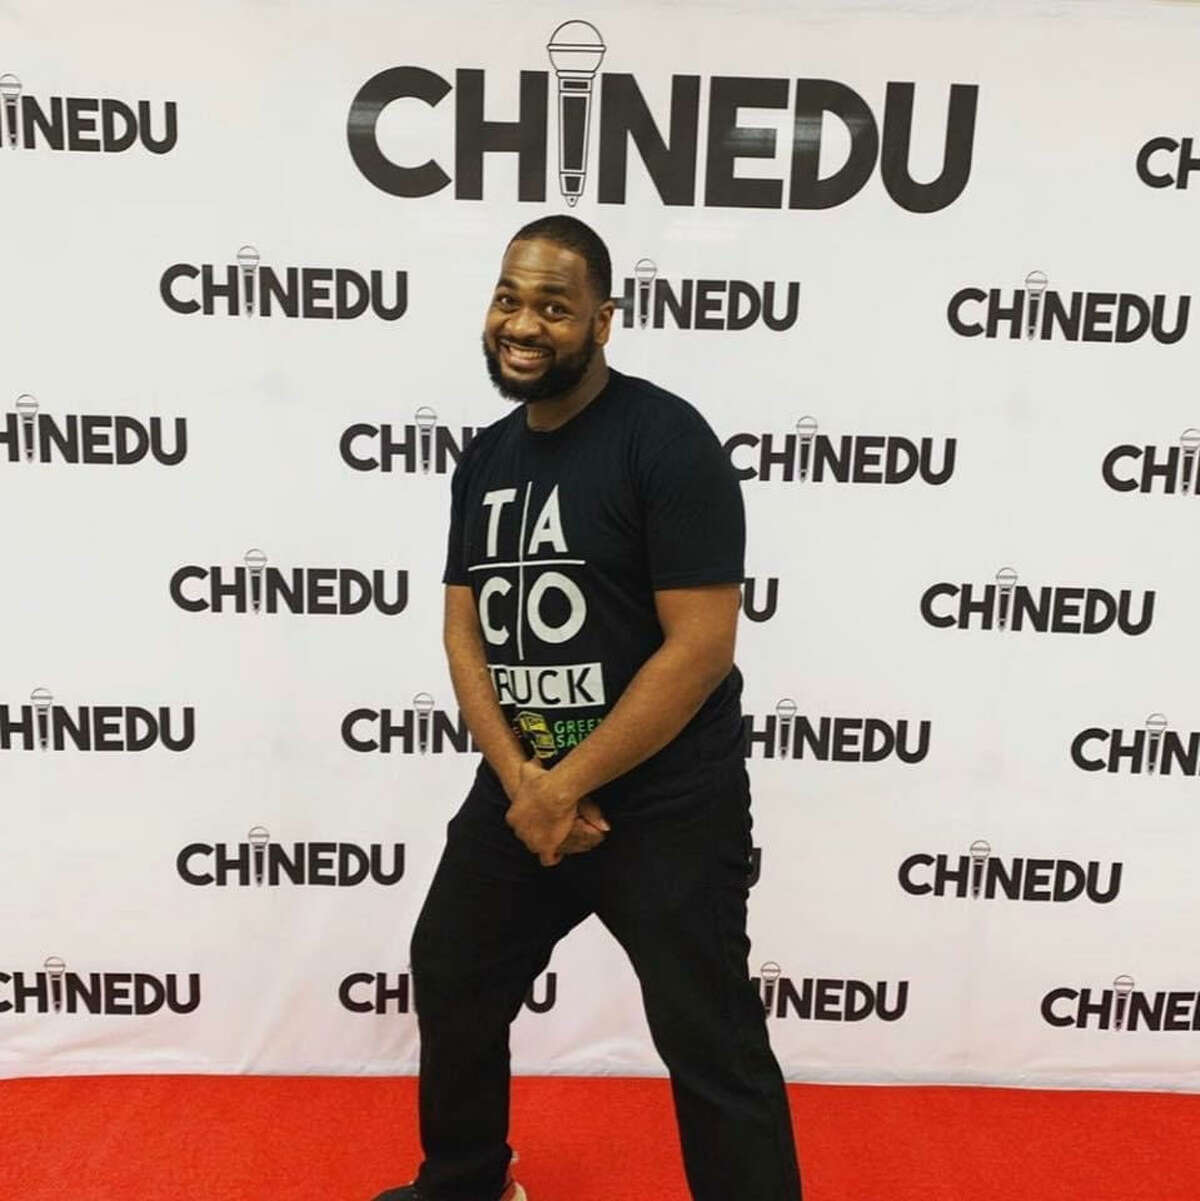 Comedian Chinedu Ogu is Houston-born and raised, a fact that's hard to miss if you've ever listened to his jokes.